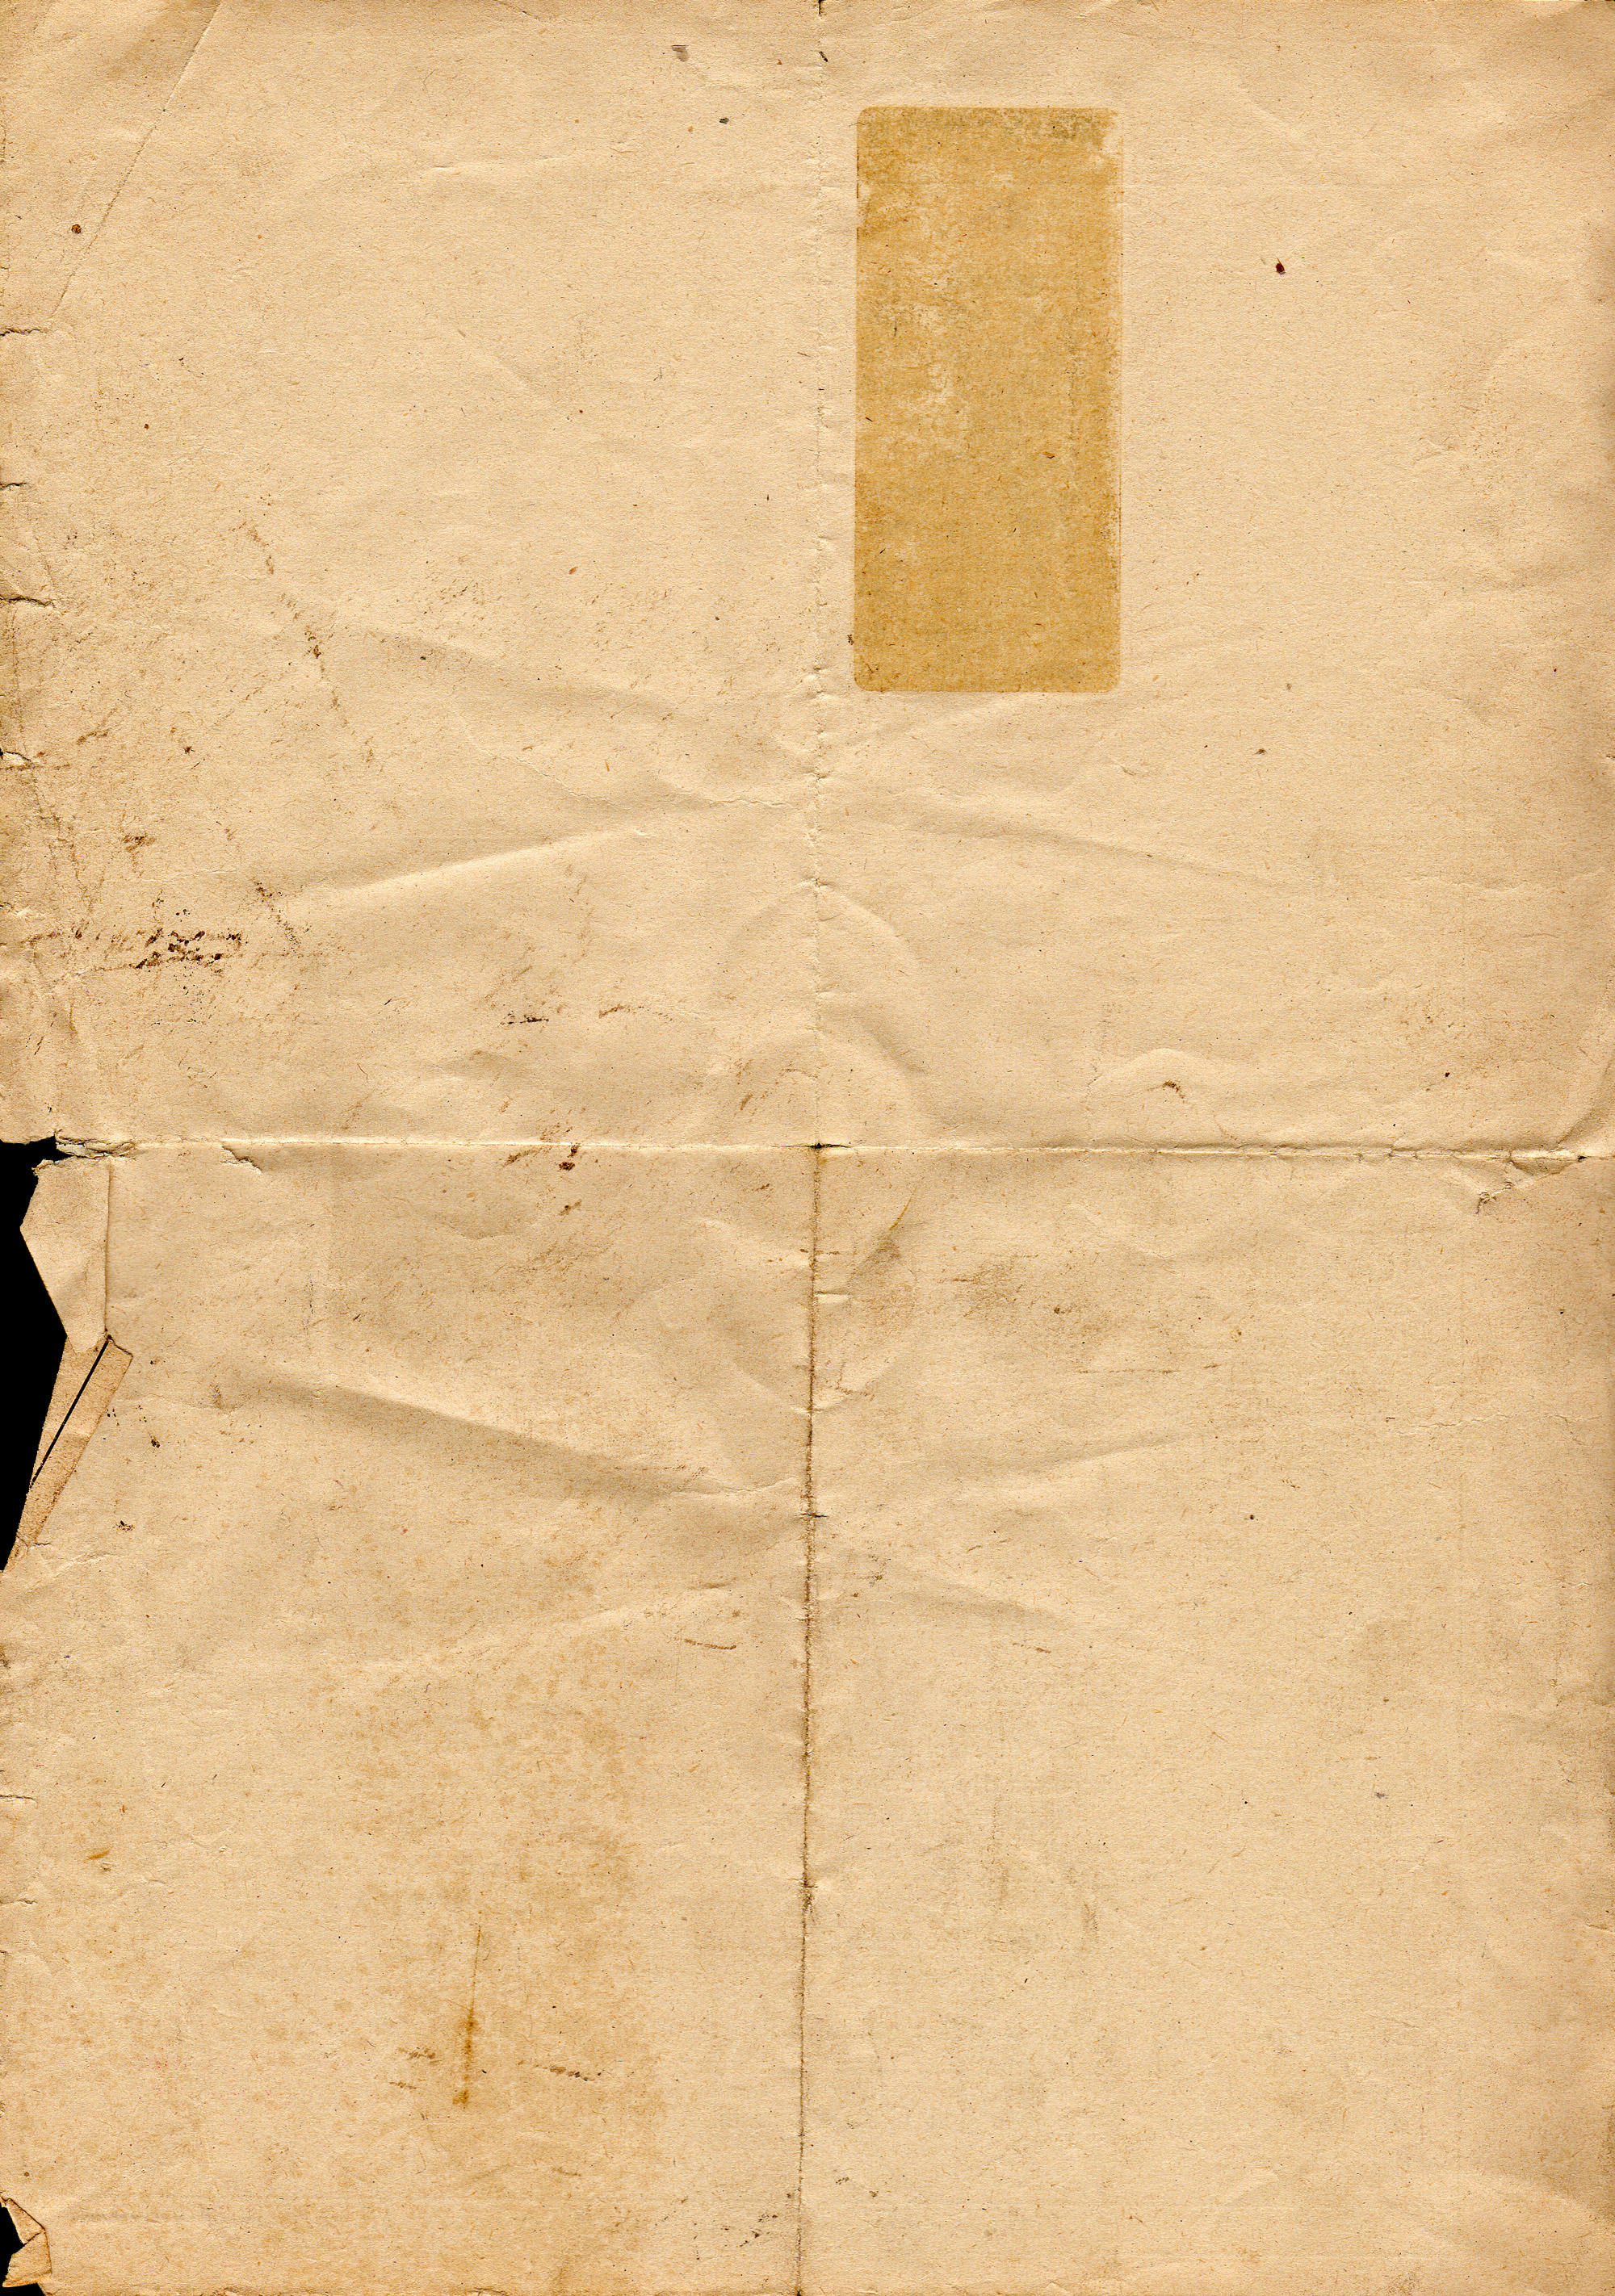 Grungy paper texture v.8 by bashcorpo